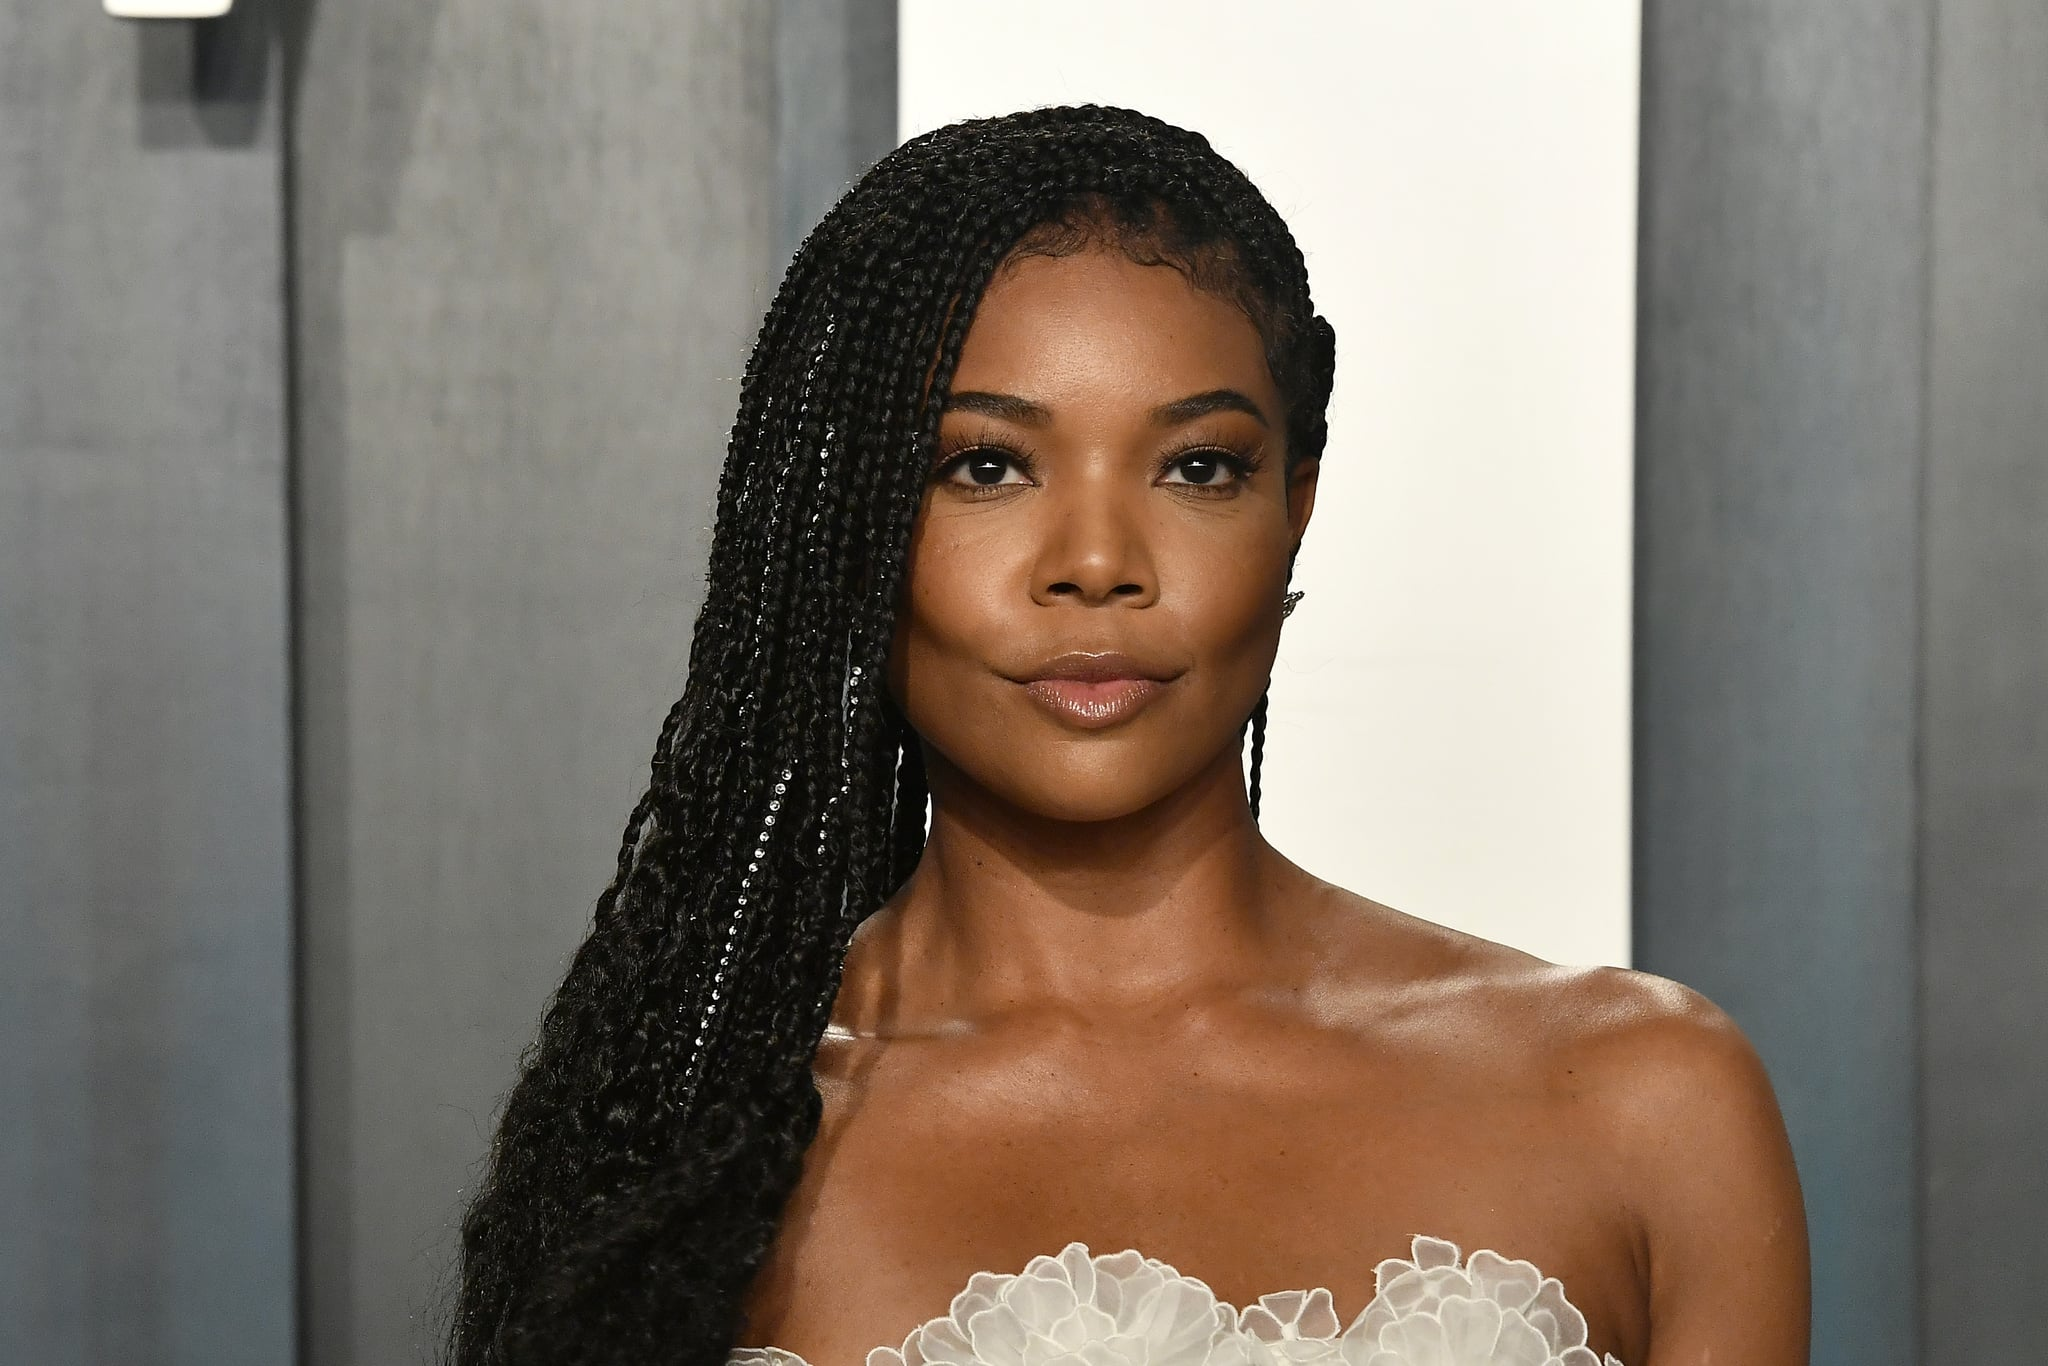 BEVERLY HILLS, CALIFORNIA - FEBRUARY 09: Gabrielle Union  attends the 2020 Vanity Fair Oscar Party hosted by Radhika Jones at Wallis Annenberg Centre for the Performing Arts on February 09, 2020 in Beverly Hills, California. (Photo by Frazer Harrison/Getty Images)